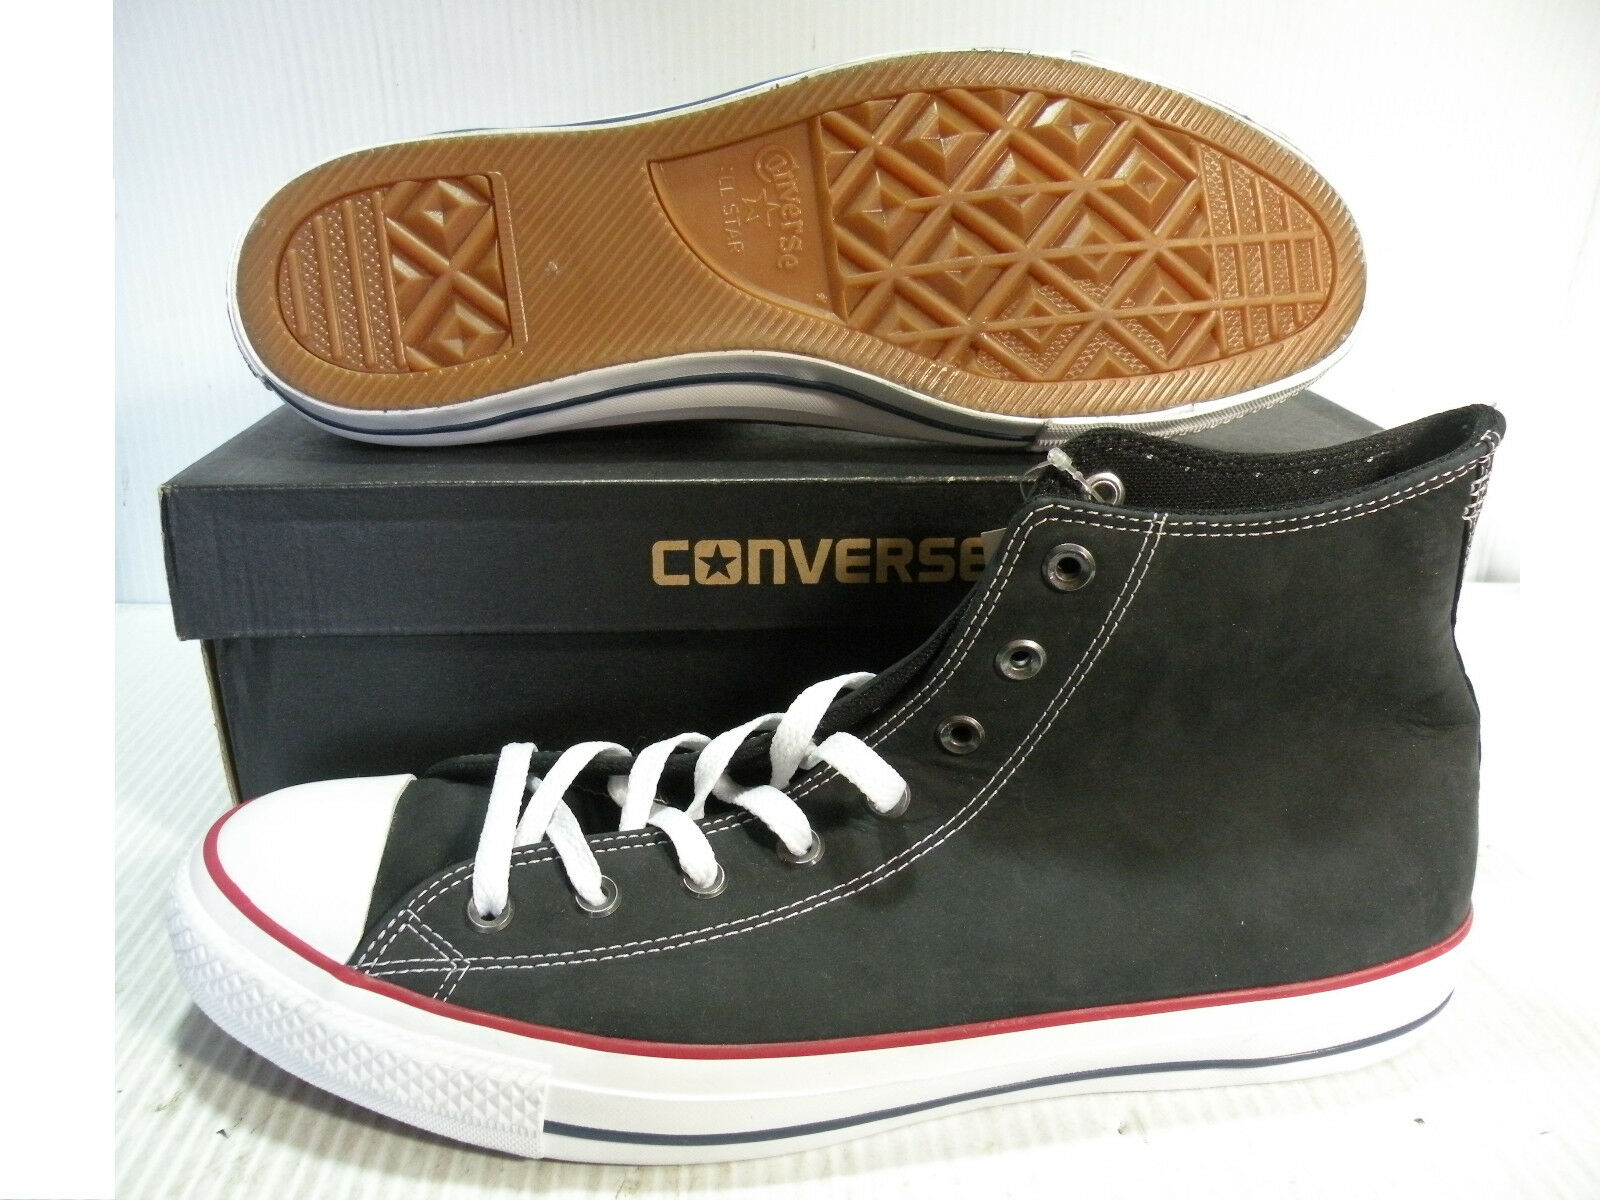 CONVERSE CHUCK TAYLOR AS HI LEATHER hommes Chaussures noir /blanc 150927C SIZE 12 NEW